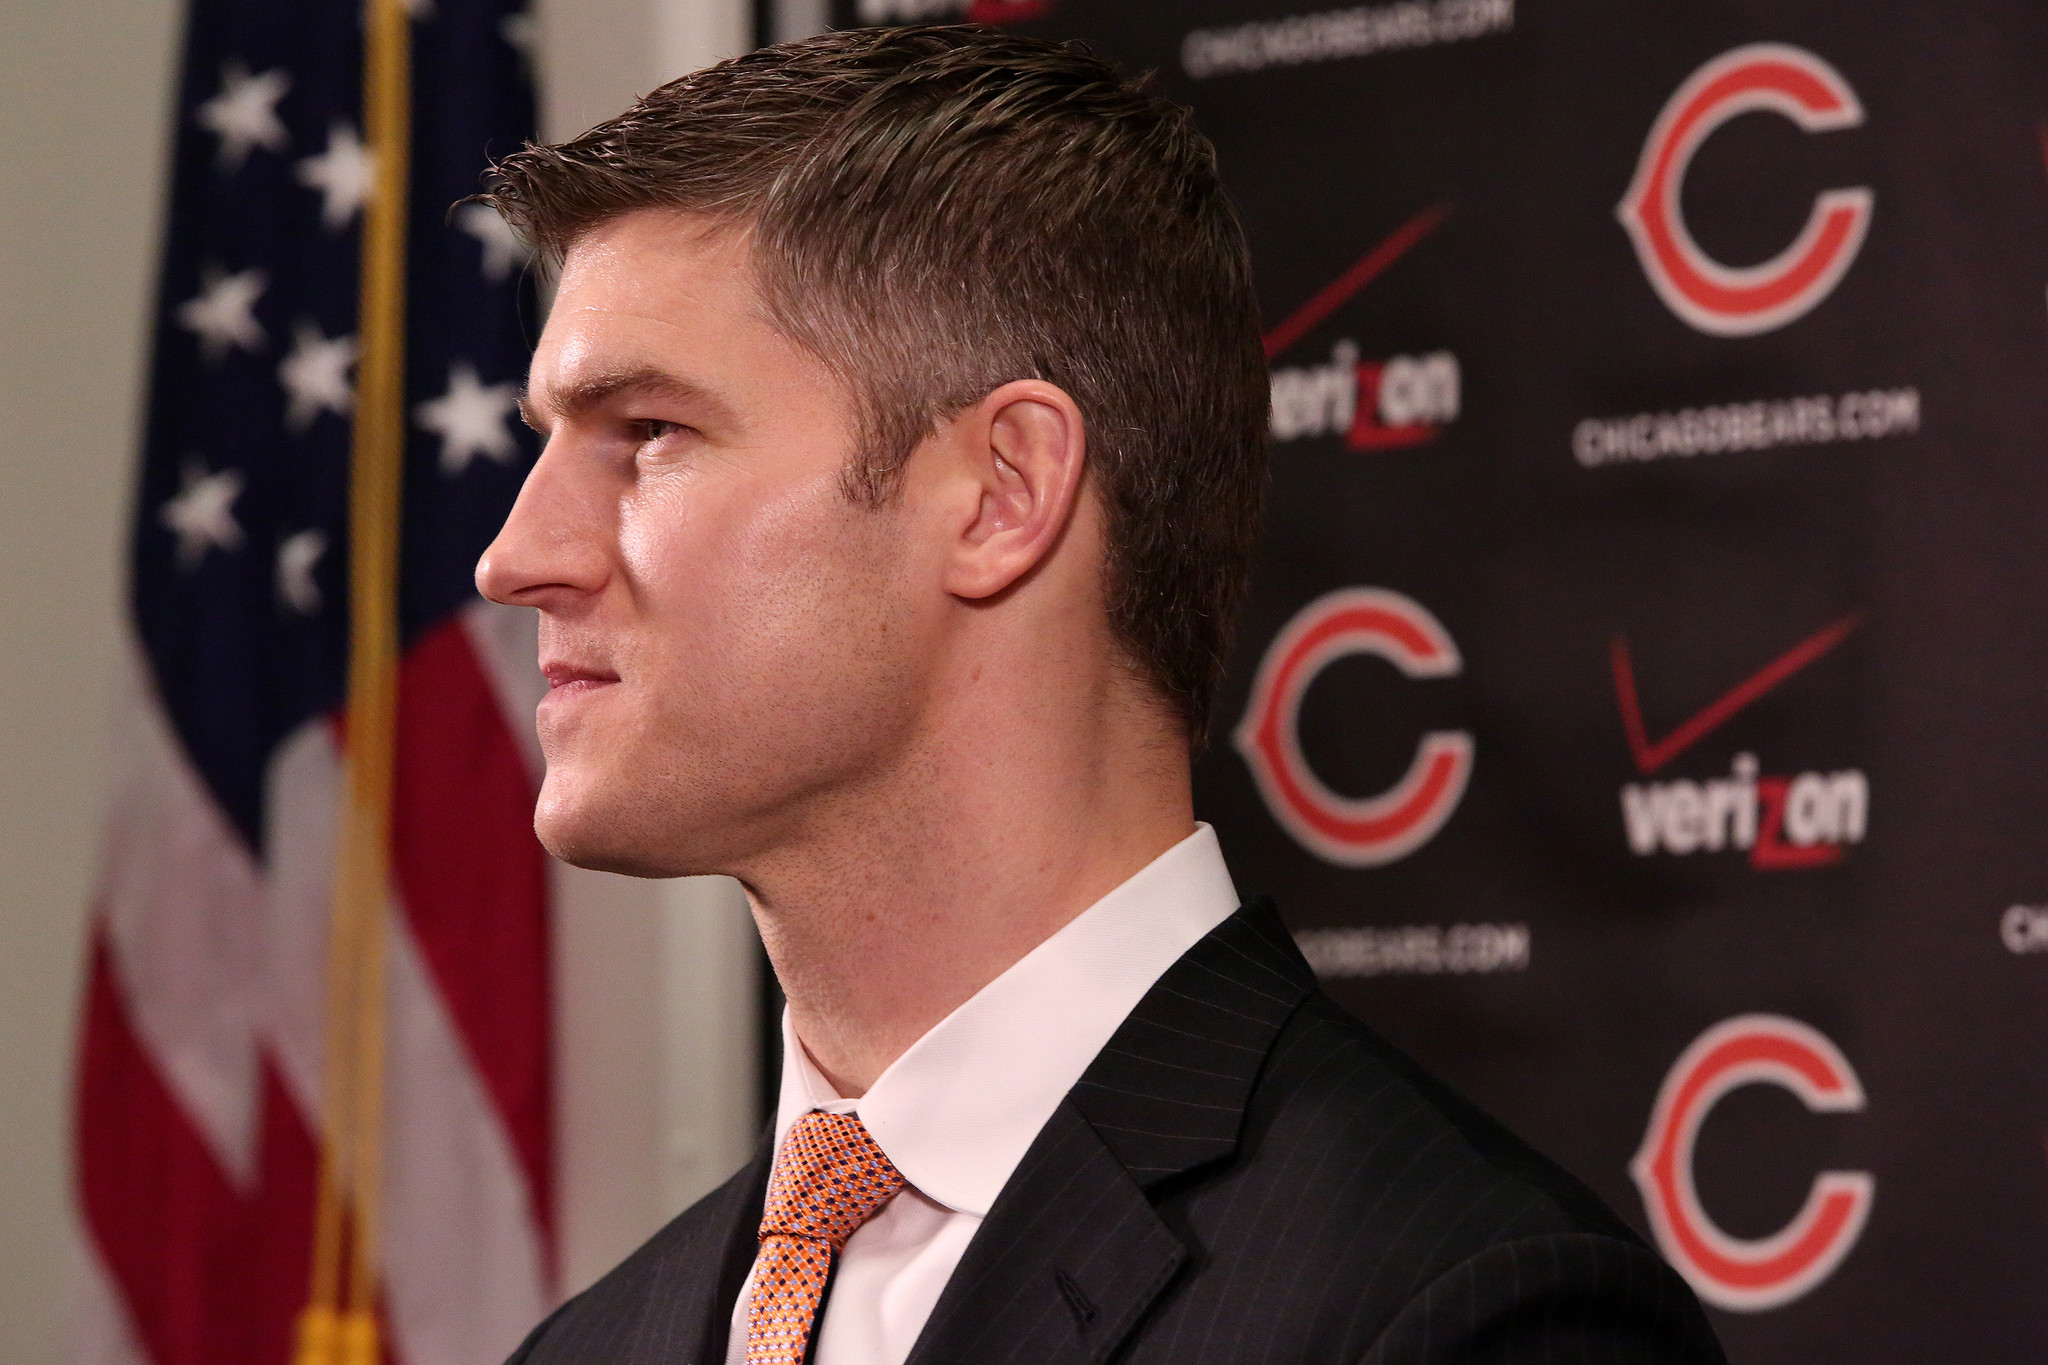 Bears' future riding on GM Ryan Pace's ability to evaluate roster